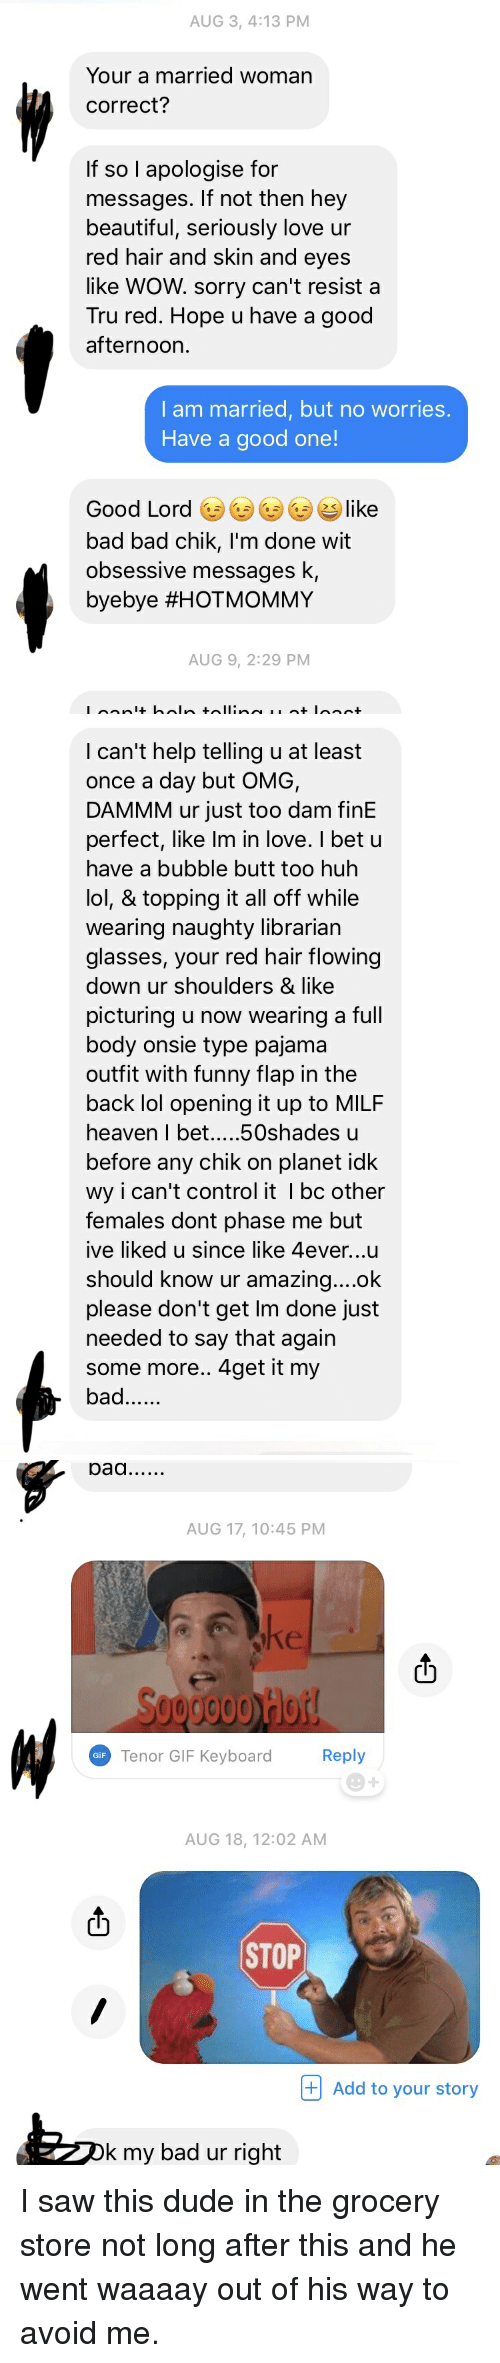 Creepy PMS: AUG 3, 4:13 PM  Your a married woman  correct?  If so l apologise for  messages. If not then hey  beautiful, seriously love ur  red hair and skin and eyes  like WOW. sorry can't resist a  Tru red. Hope u have a good  afternoon.  I am married, but no worries.  Have a good one!  Good Lord ㊧㊧GD like  bad bad chik, I'm done wit  obsessive messages k,  byebye #HOTMOMMY  AUG 9, 2:29 PM   I can't help telling u at least  once a day but OMG,  DAMMM ur just too dam finE  perfect, like Im in love. I bet u  have a bubble butt too huh  lol, & topping it all off while  wearing naughty librarian  glasses, your red hair flowing  down ur shoulders & like  picturing u now wearing a full  body onsie type pajama  outfit with funny flap in the  back lol opening it up to MILF  before any chik on planet idk  wy i can't control it I bc other  Temales dont phase me but  ive liked u since like 4ever...u  should know ur amazina....ok  please don't get lm done just  needed to say that agairn  some more.. 4get it my  bad   AUG 17, 10:45 PM  ct  0000 Hot  Tenor GIF Kevboard  Reply  GiF  AUG 18, 12:02 AM  STOP  + Add to your story  k my bad ur right I saw this dude in the grocery store not long after this and he went waaaay out of his way to avoid me.